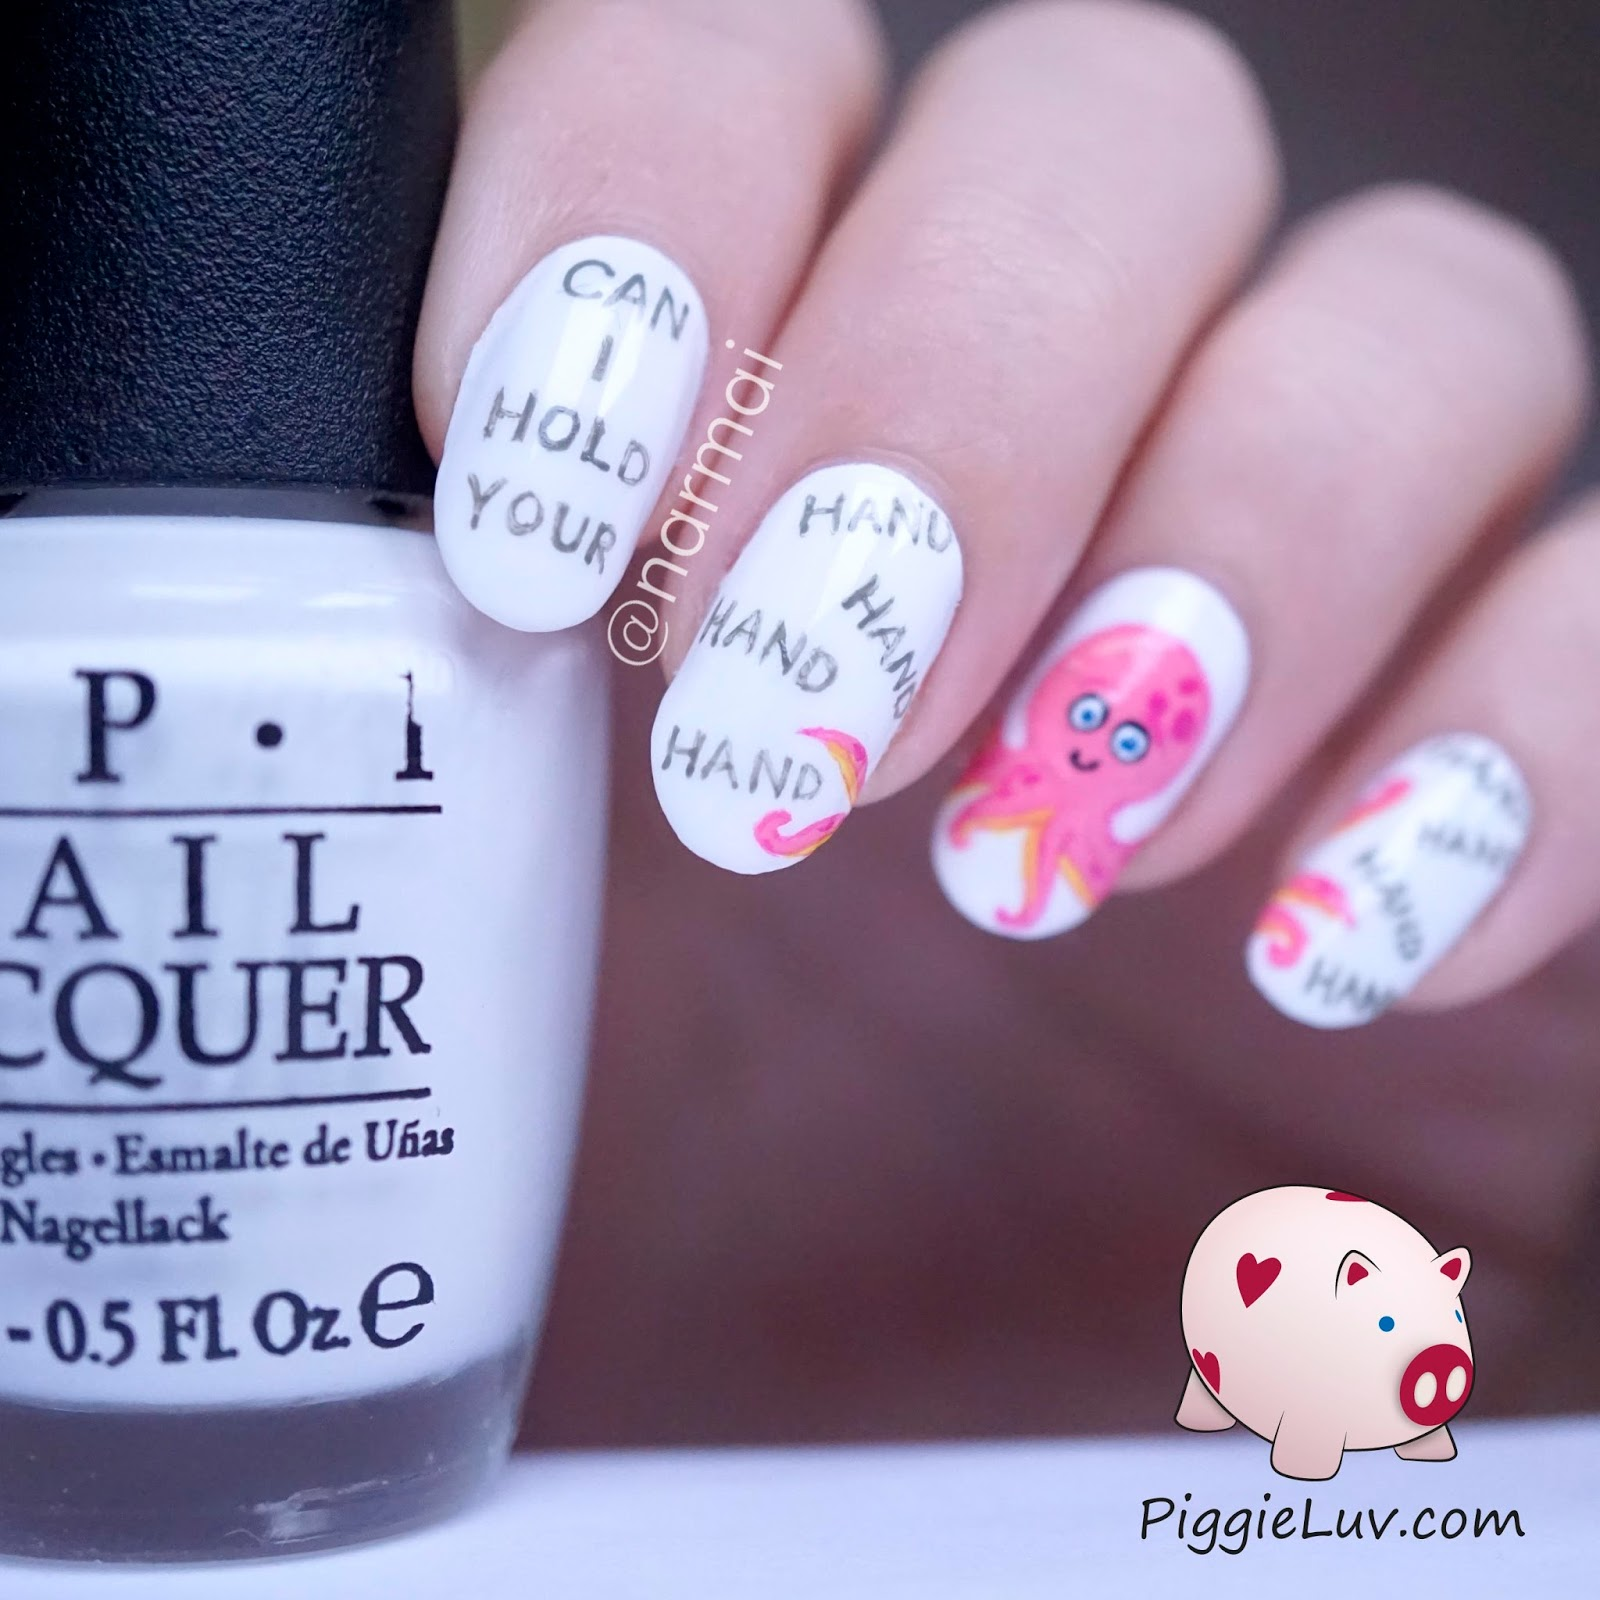 Piggieluv valentines day nail art can i hold your hand hand valentines day nail art can i hold your hand hand hand hand prinsesfo Image collections